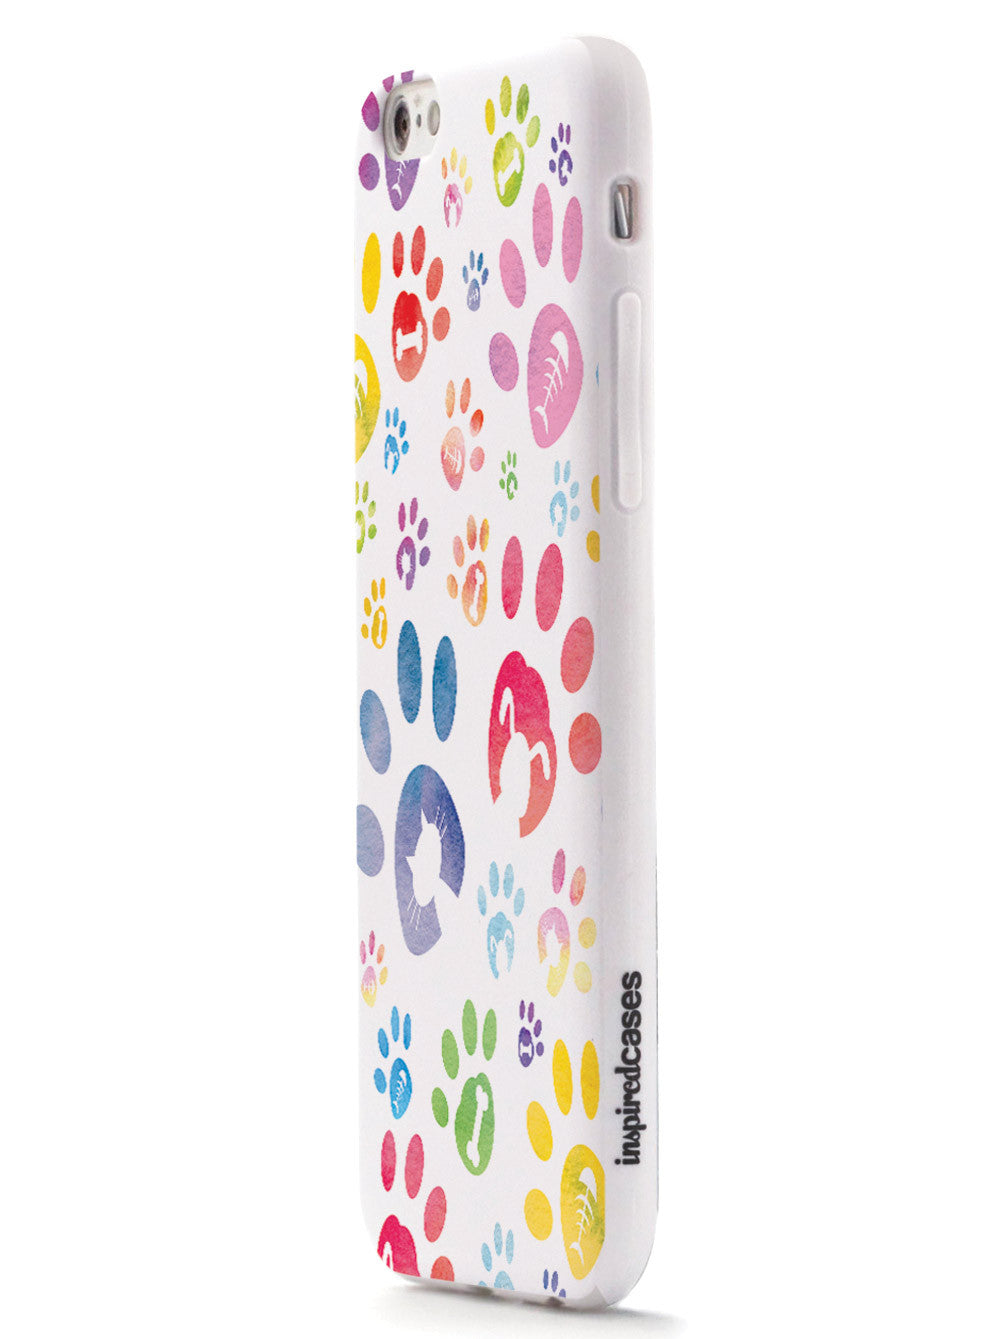 Dog & Cat Lover - Paw Prints - White Case